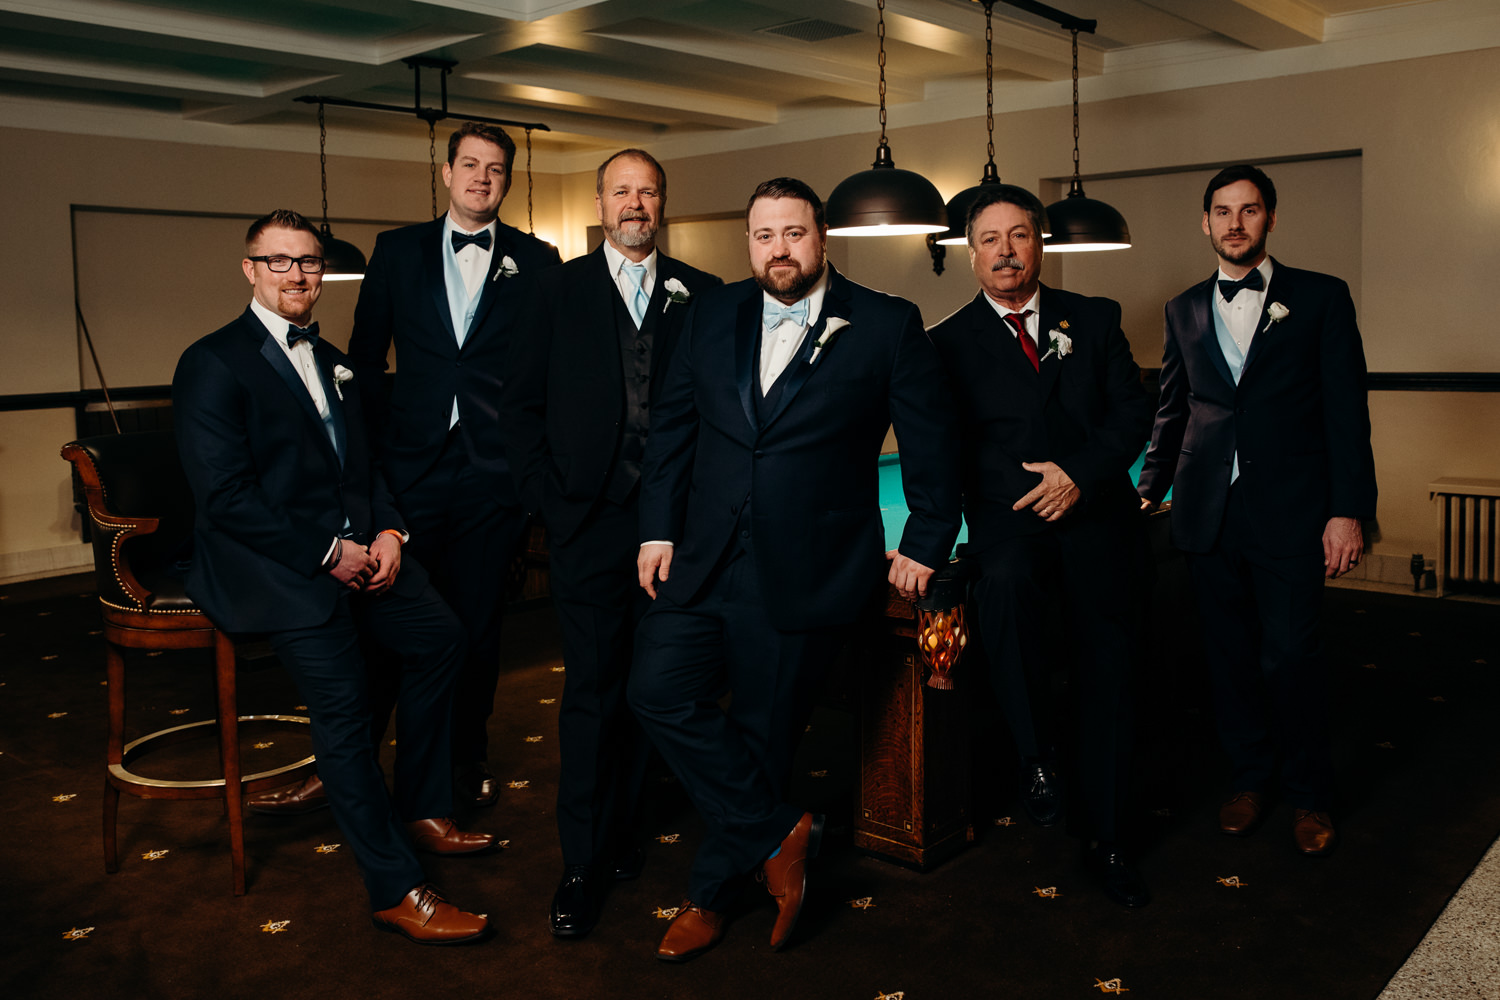 Grant Beachy photography goshen chicago south bend wedding editorial fitness-004.jpg